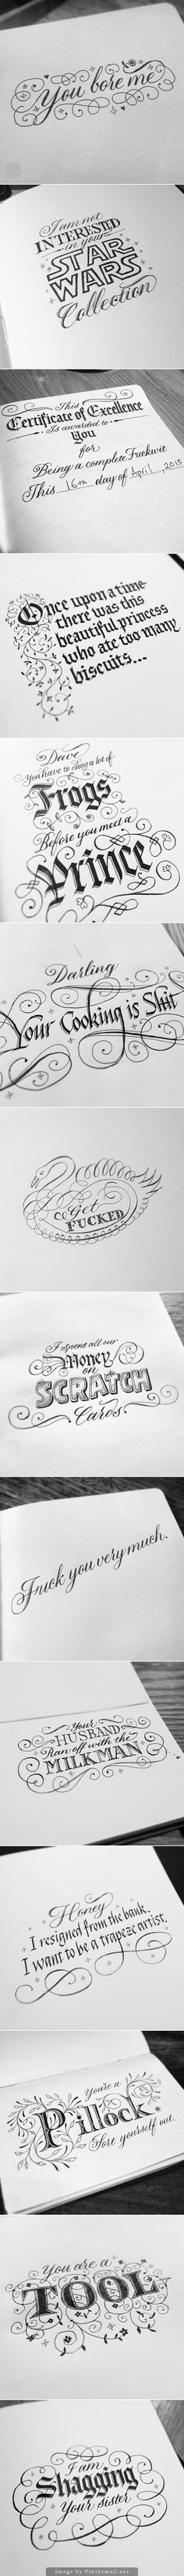 Hilariously Offensive Calligraphy by Seb Lester